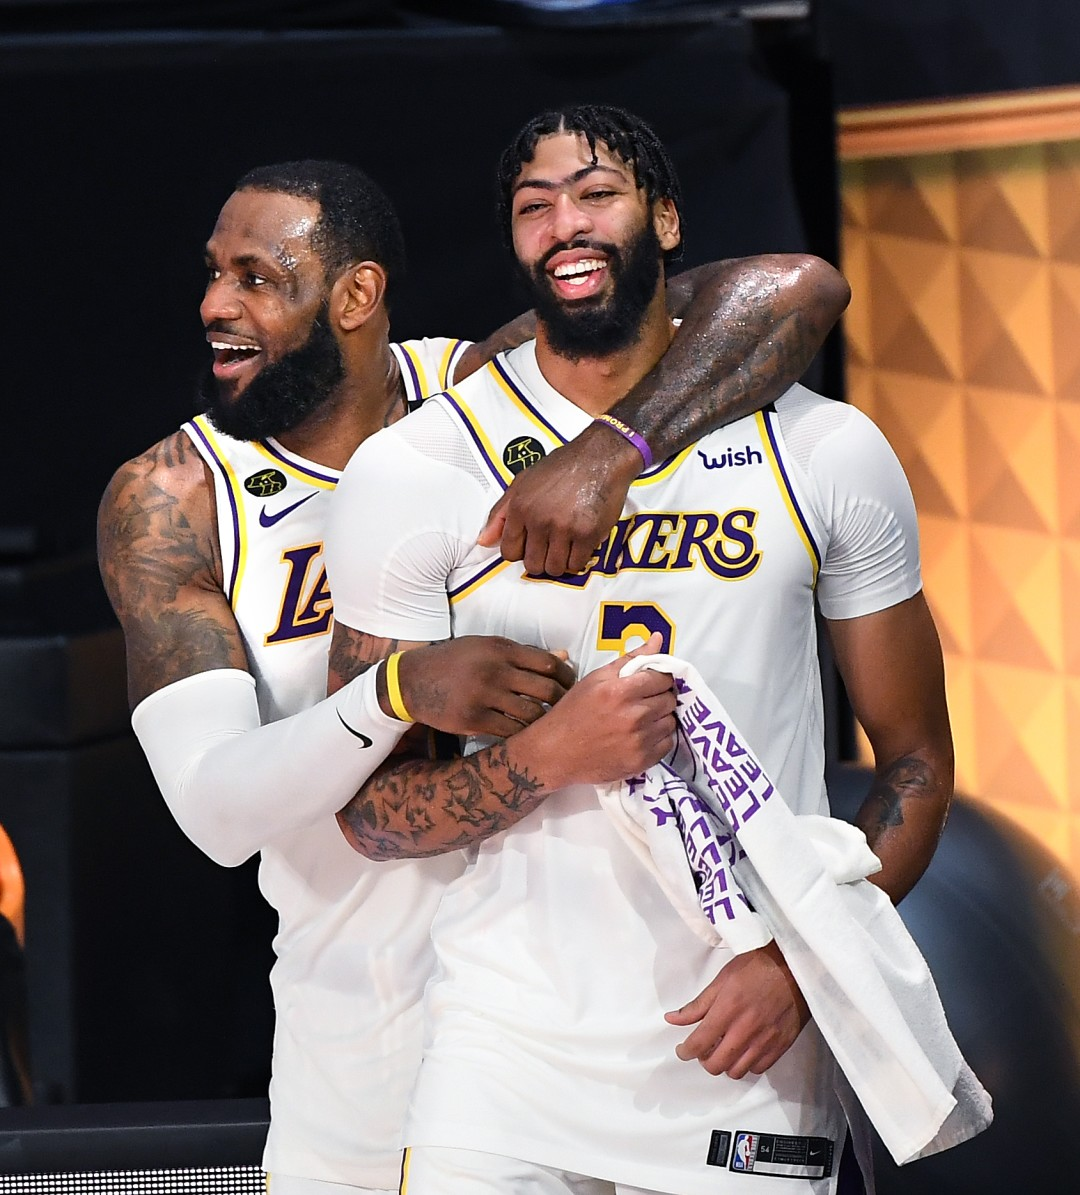 LeBron James, left, and Anthony Davis celebrate in the closing moments of Game 6 of the NBA Finals as the Lakers win their 17th championship.